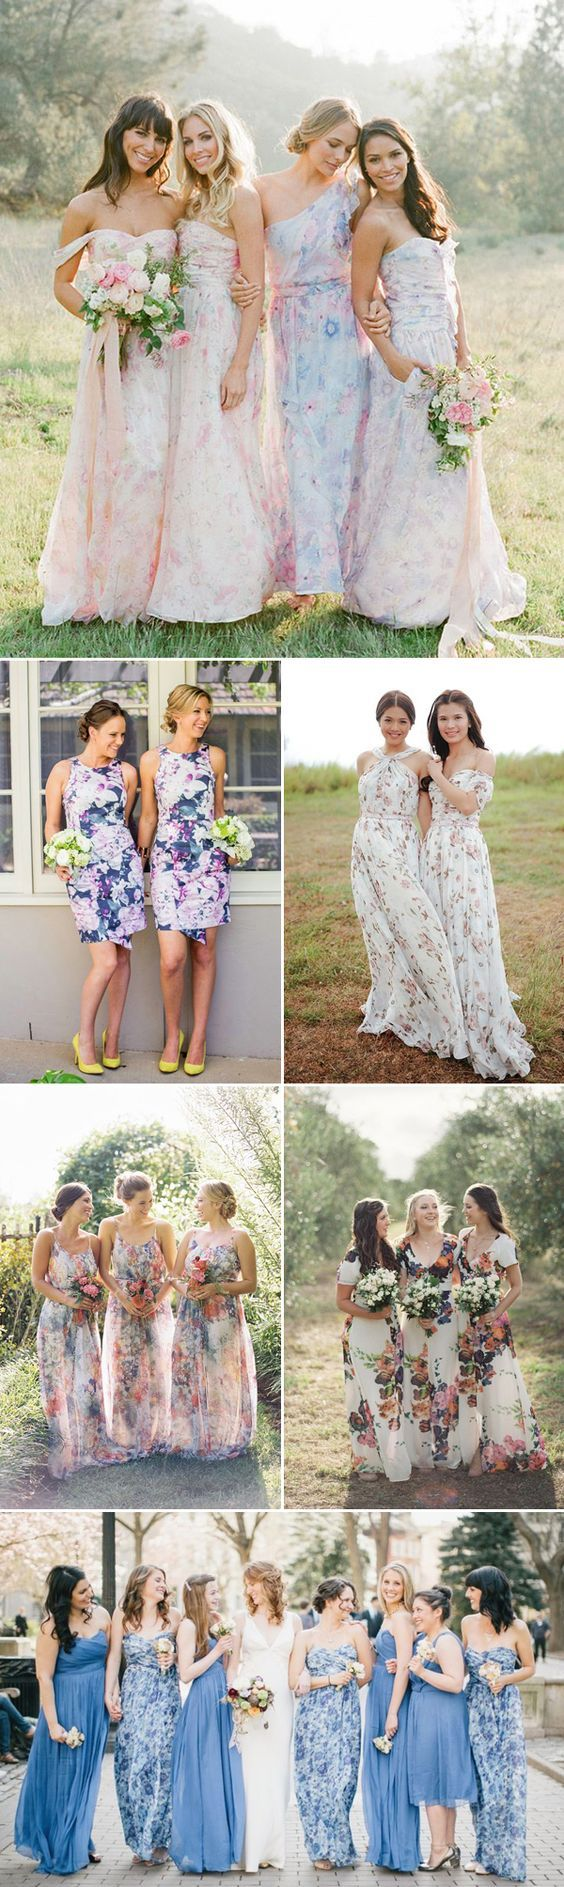 Watercolor Floral Print Bridesmaid Dresses / http://www.himisspuff.com/bridesmaid-dress-ideas/15/